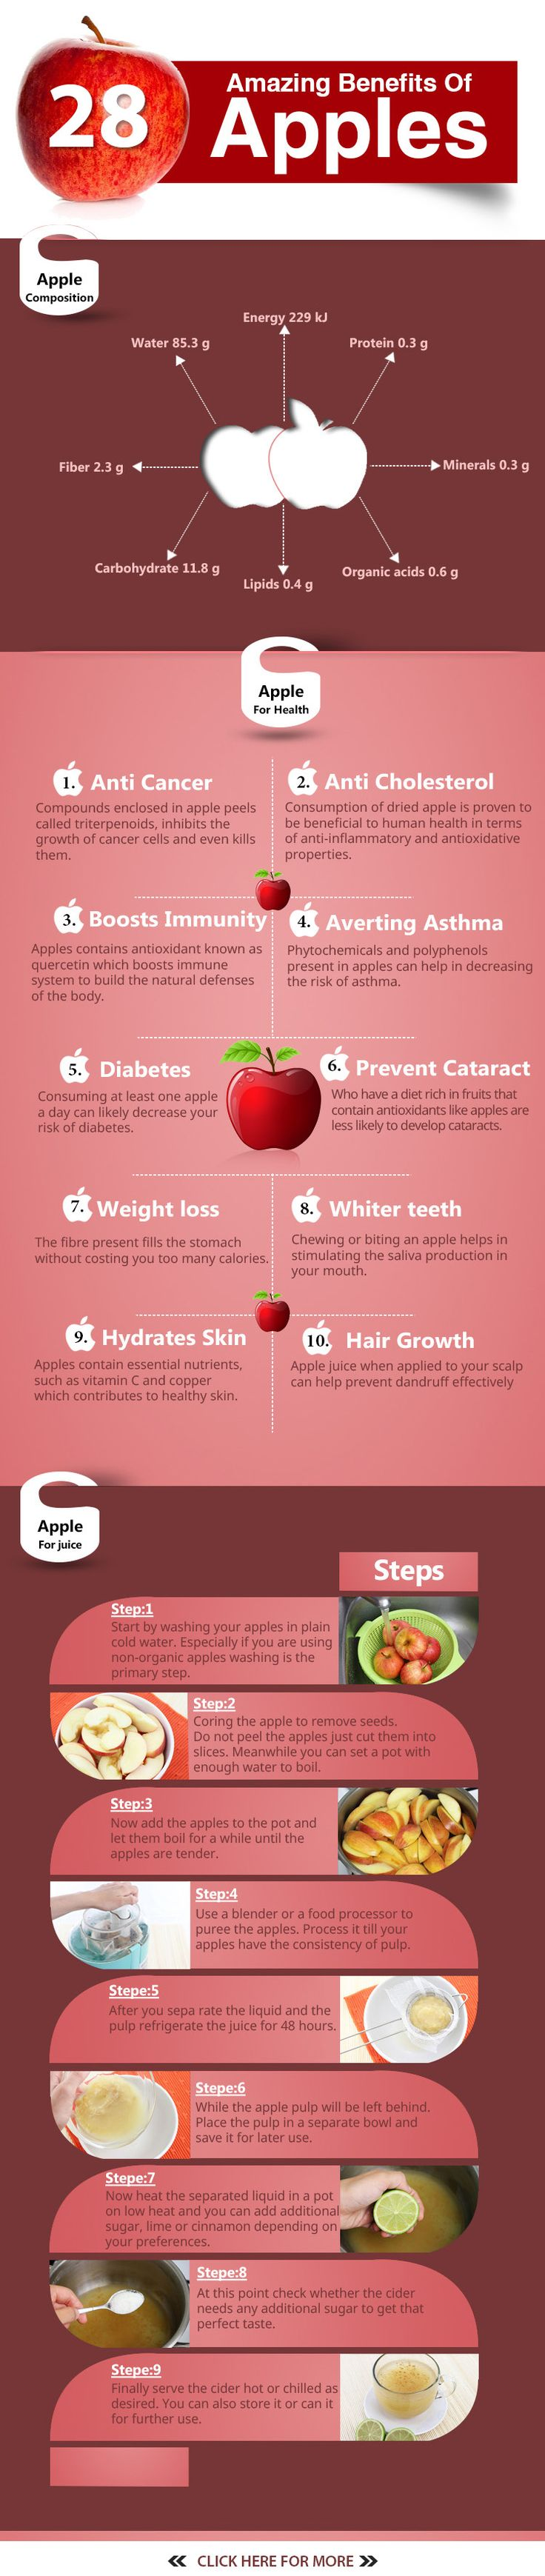 minerals and vitamins. Here is a list of the top 15 apple benefits for skin & Health. ..